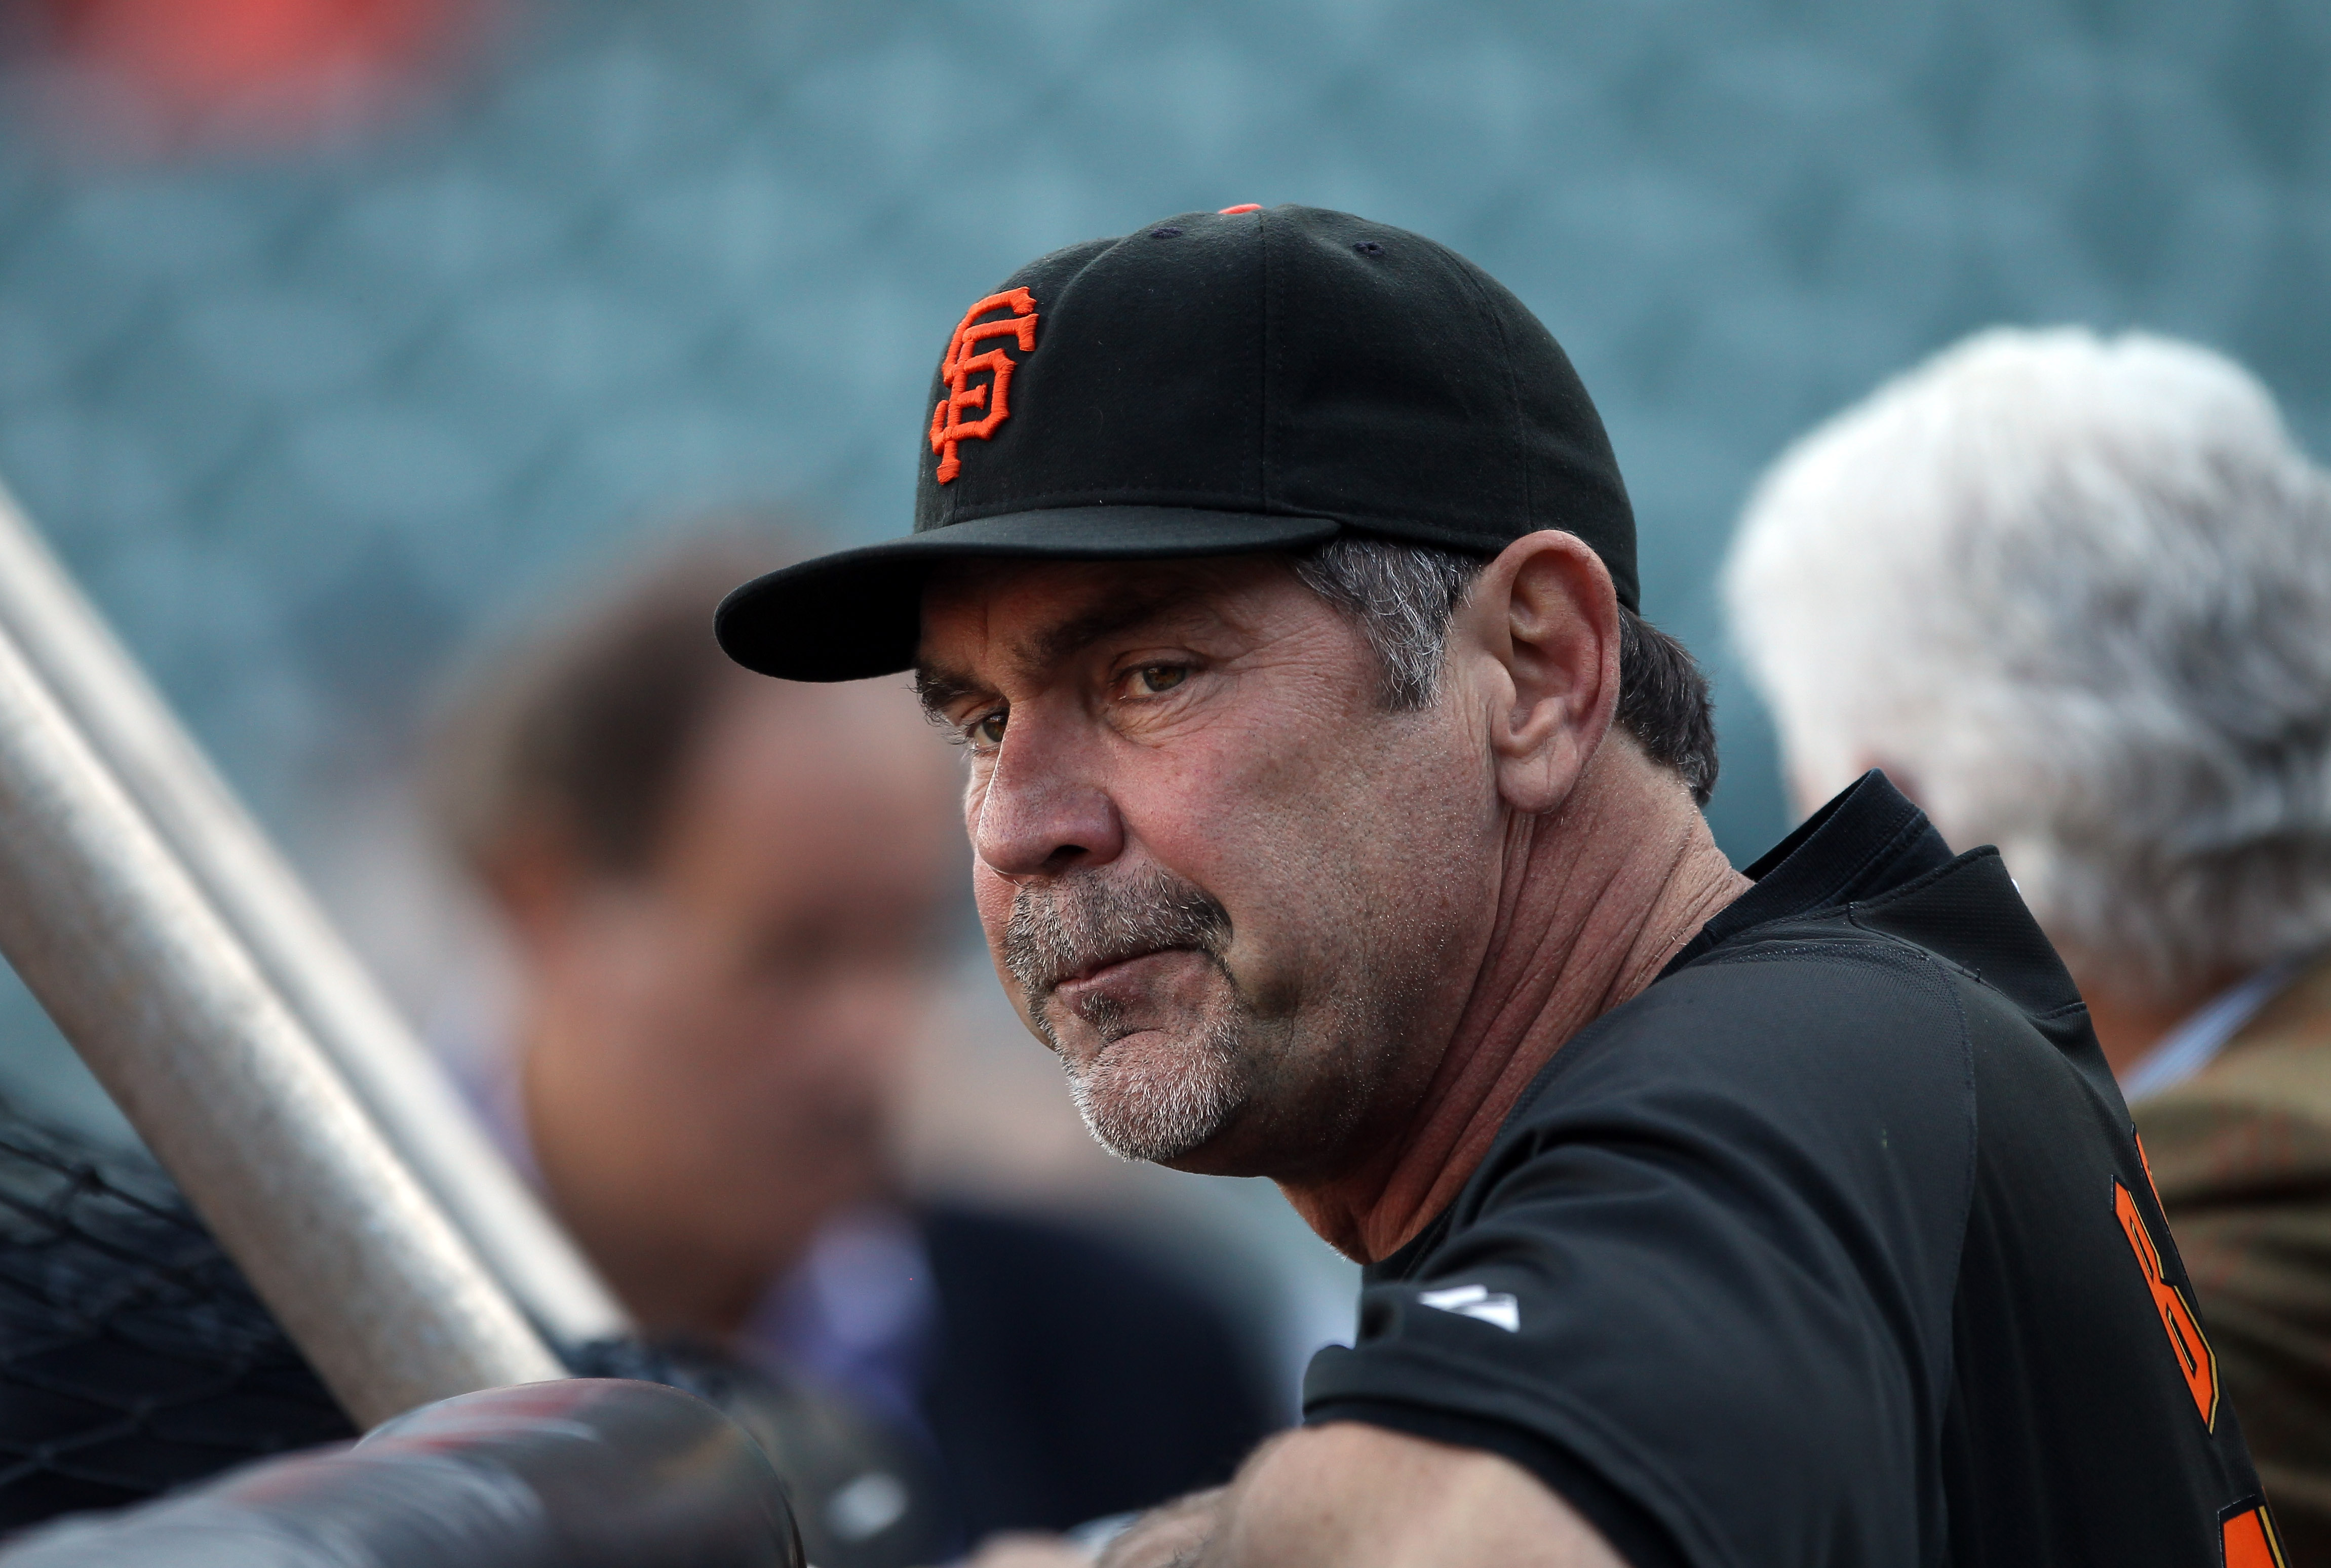 SAN FRANCISCO - OCTOBER 08:  Manager Bruce Bochy of the San Francisco Giants watches his team warm up before their game against the Atlanta Braves in game 2 of the NLDS at AT&T Park on October 8, 2010 in San Francisco, California.  (Photo by Ezra Shaw/Get